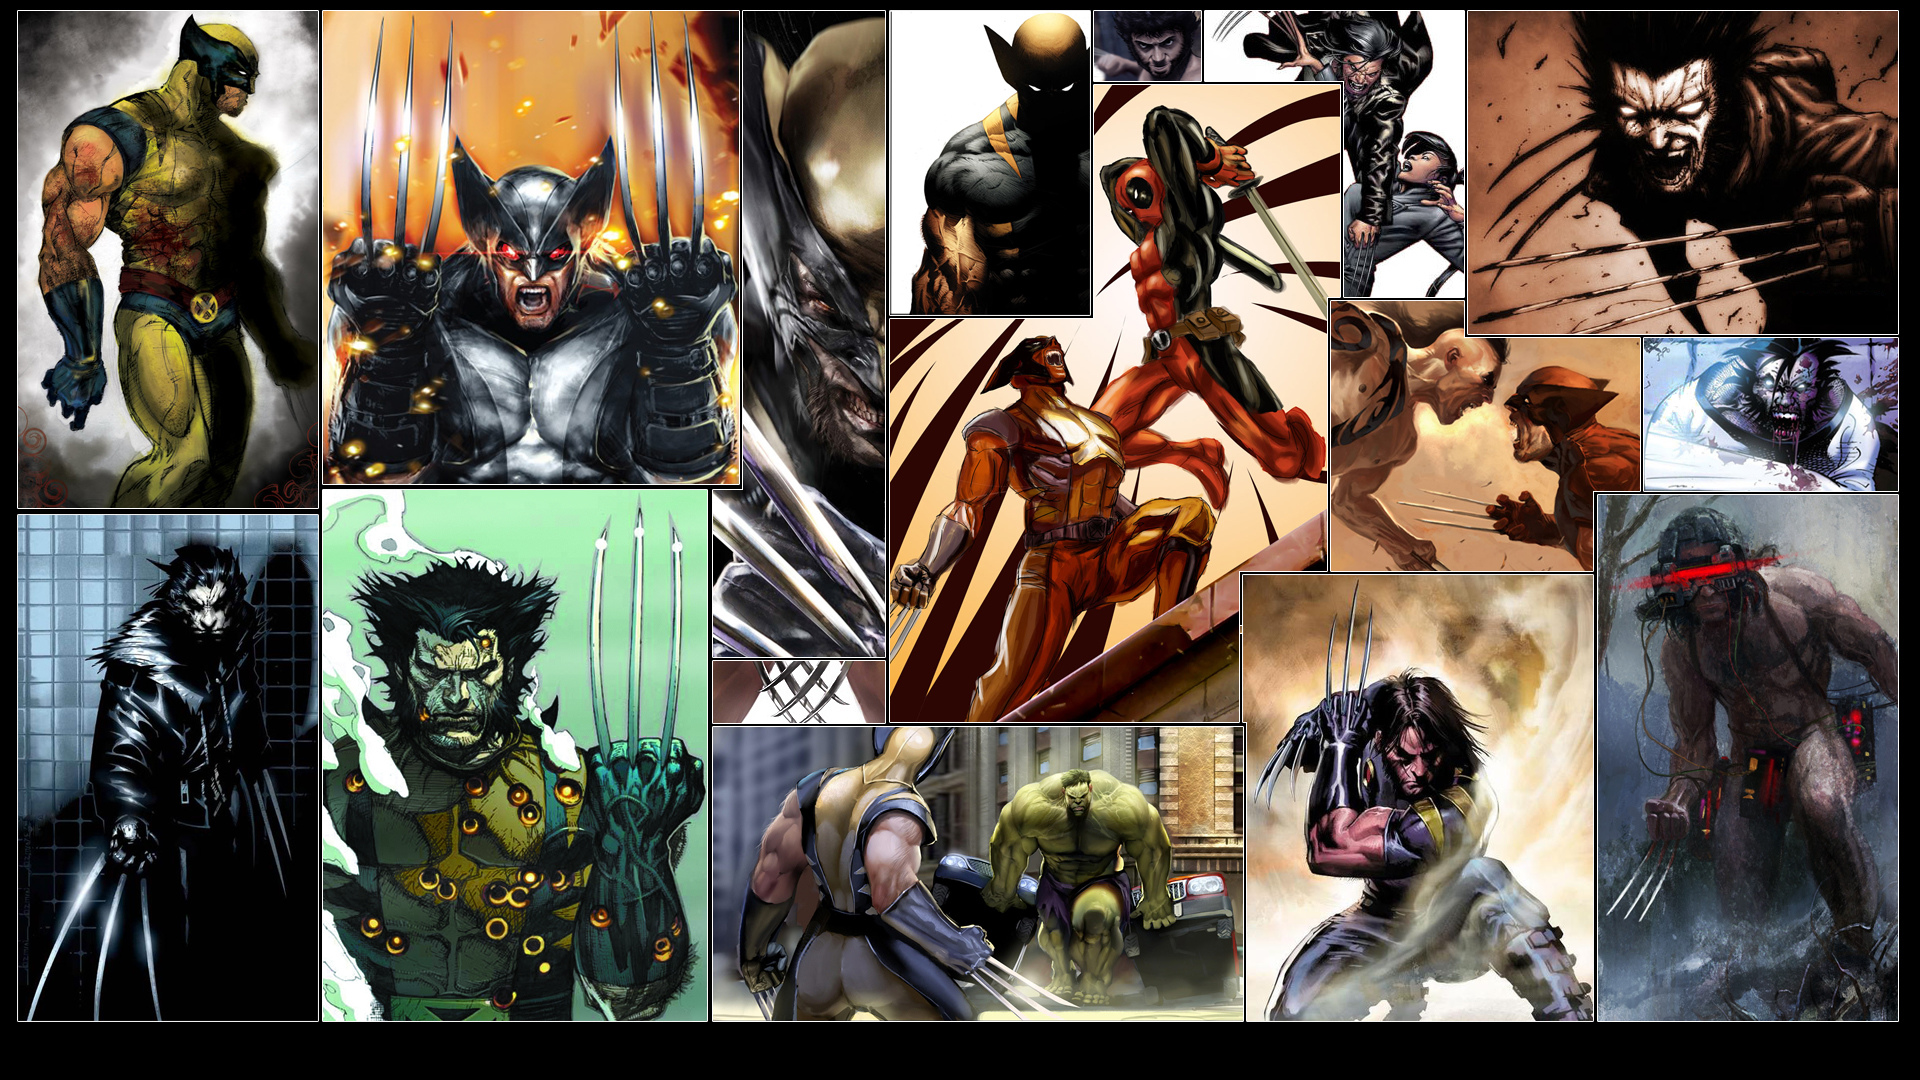 Comics-Wolverine-Deadpool-Hulk-wallpaper-wpc5803603